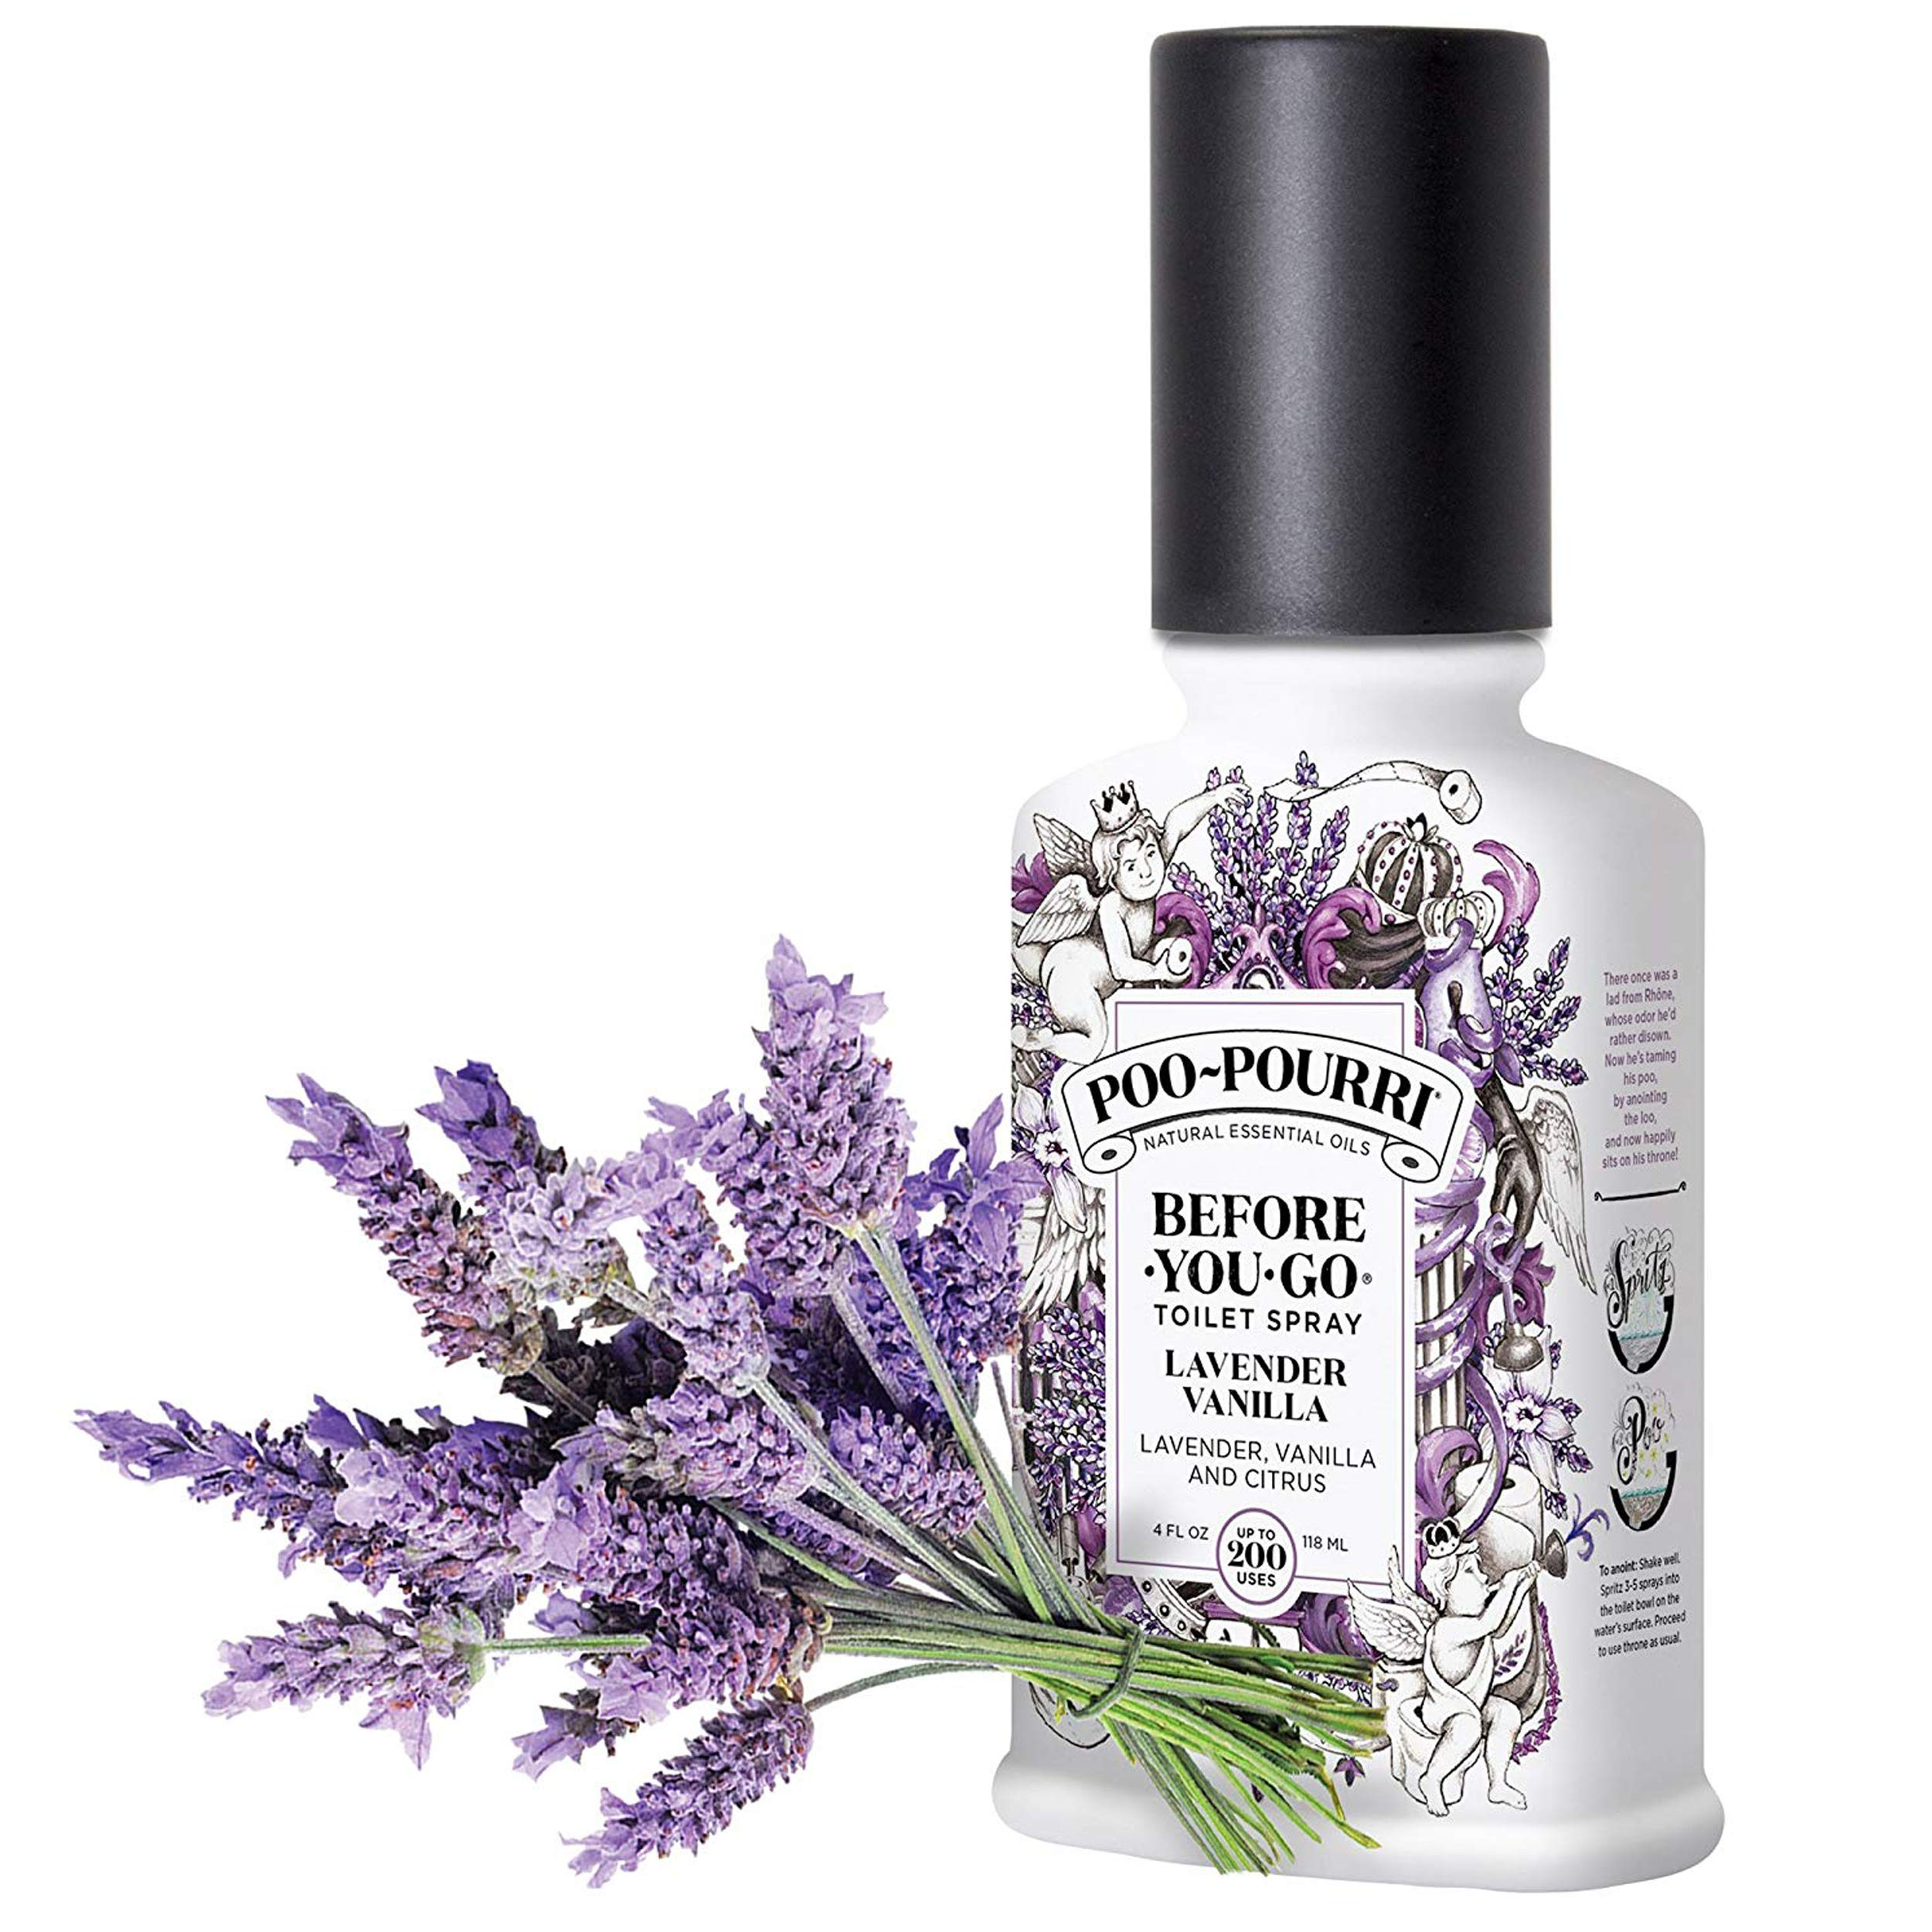 Poo-Pourri Lavender Vanilla, Tropical Hibiscus and Vanilla Mint 4-Ounce Set by Poo-Pourri (Image #6)